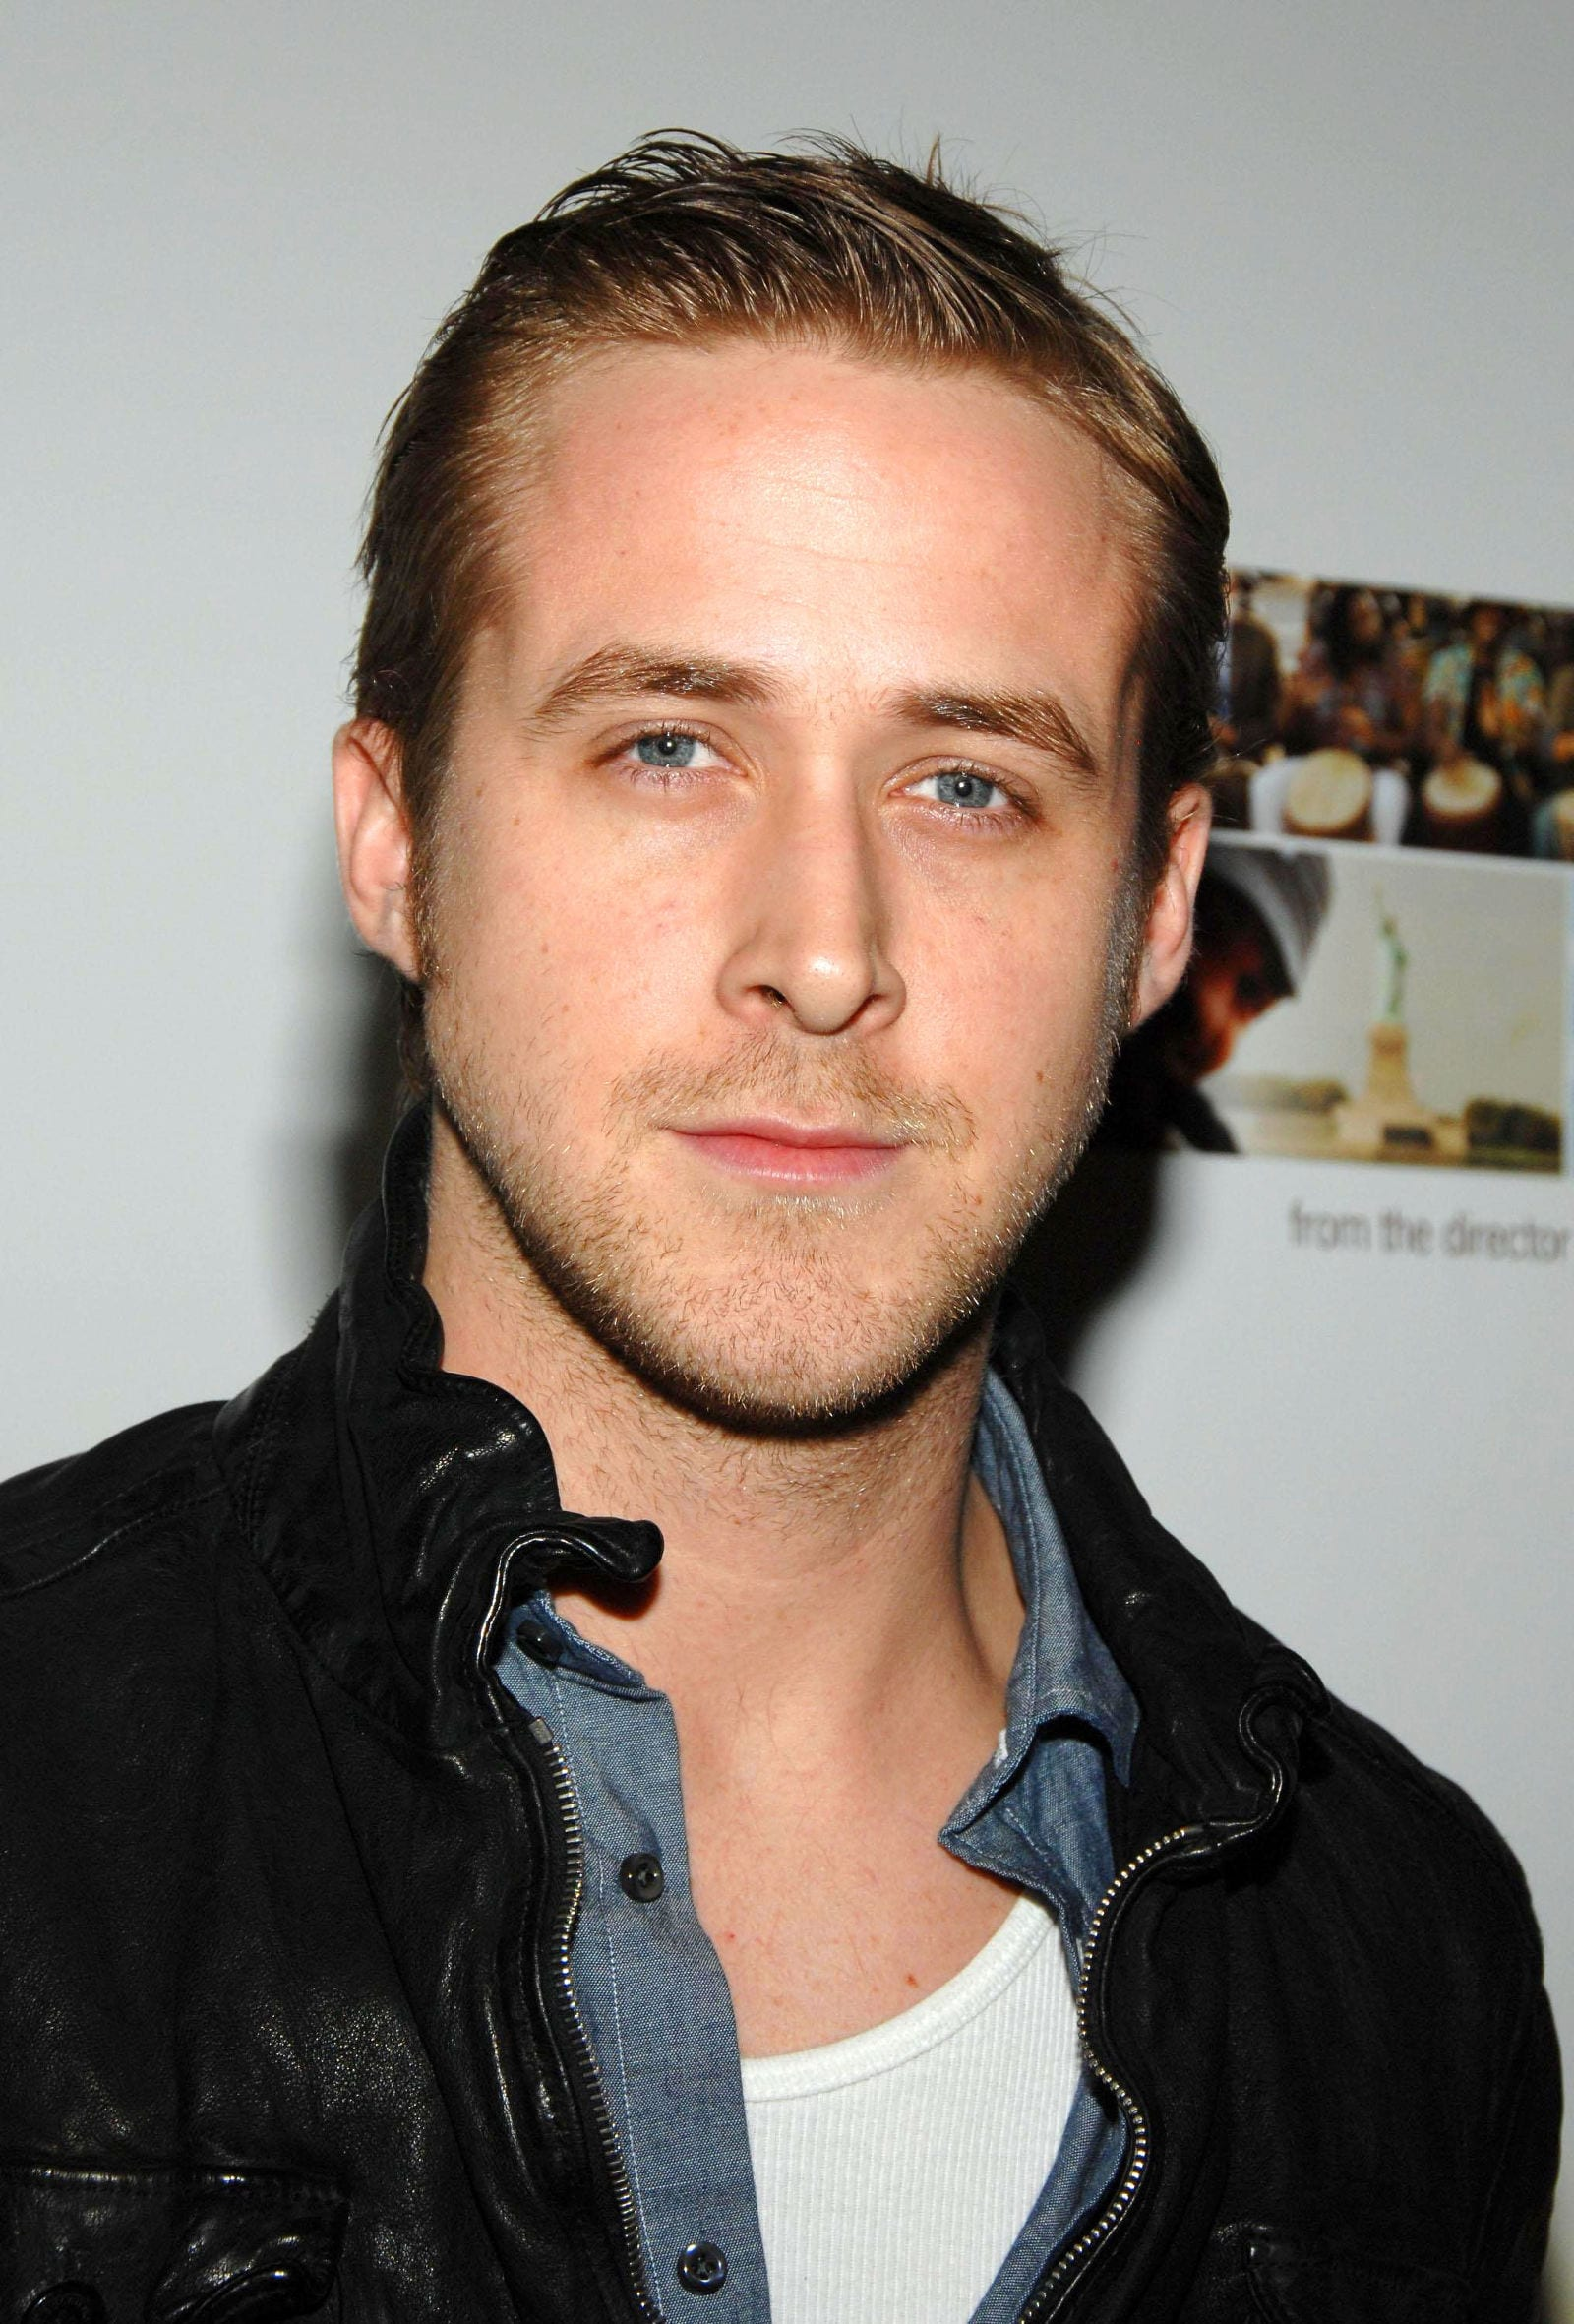 Ryan Gosling Slicked Back Top and Sides April 2008